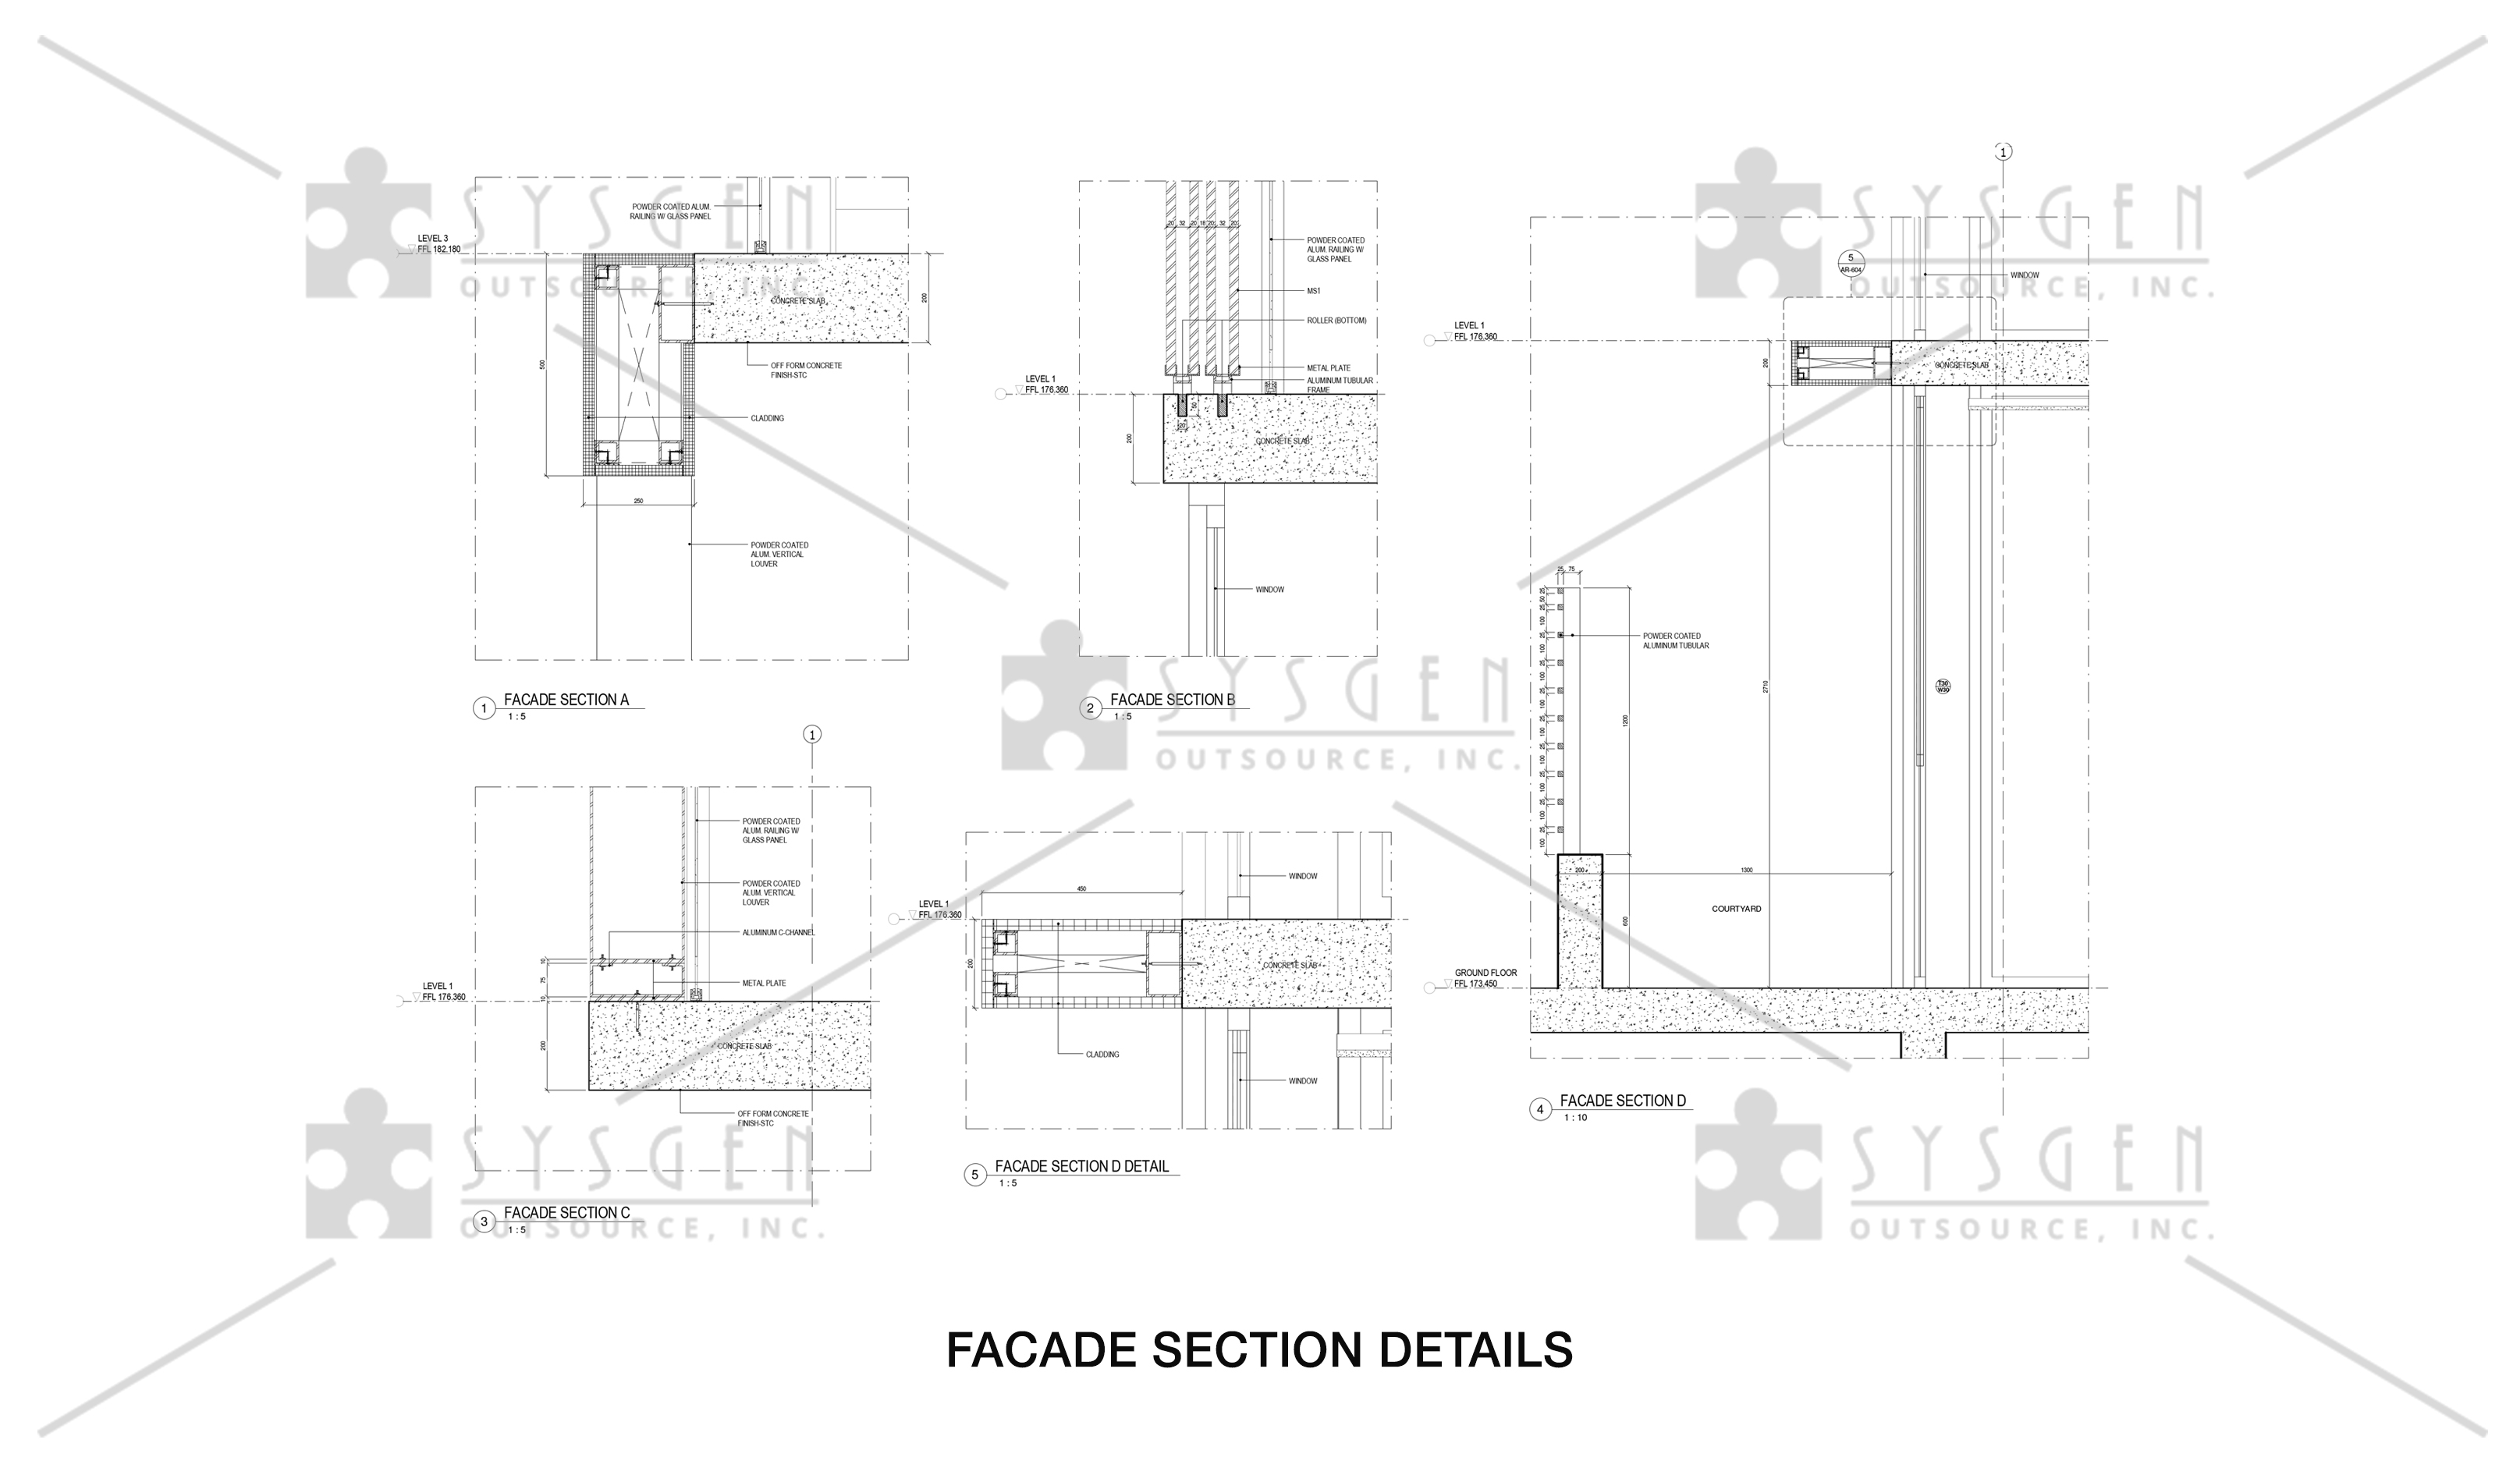 sysgen-outsource-cad-outsourcing-services-cad-conversion-revit-4-storey-residential22